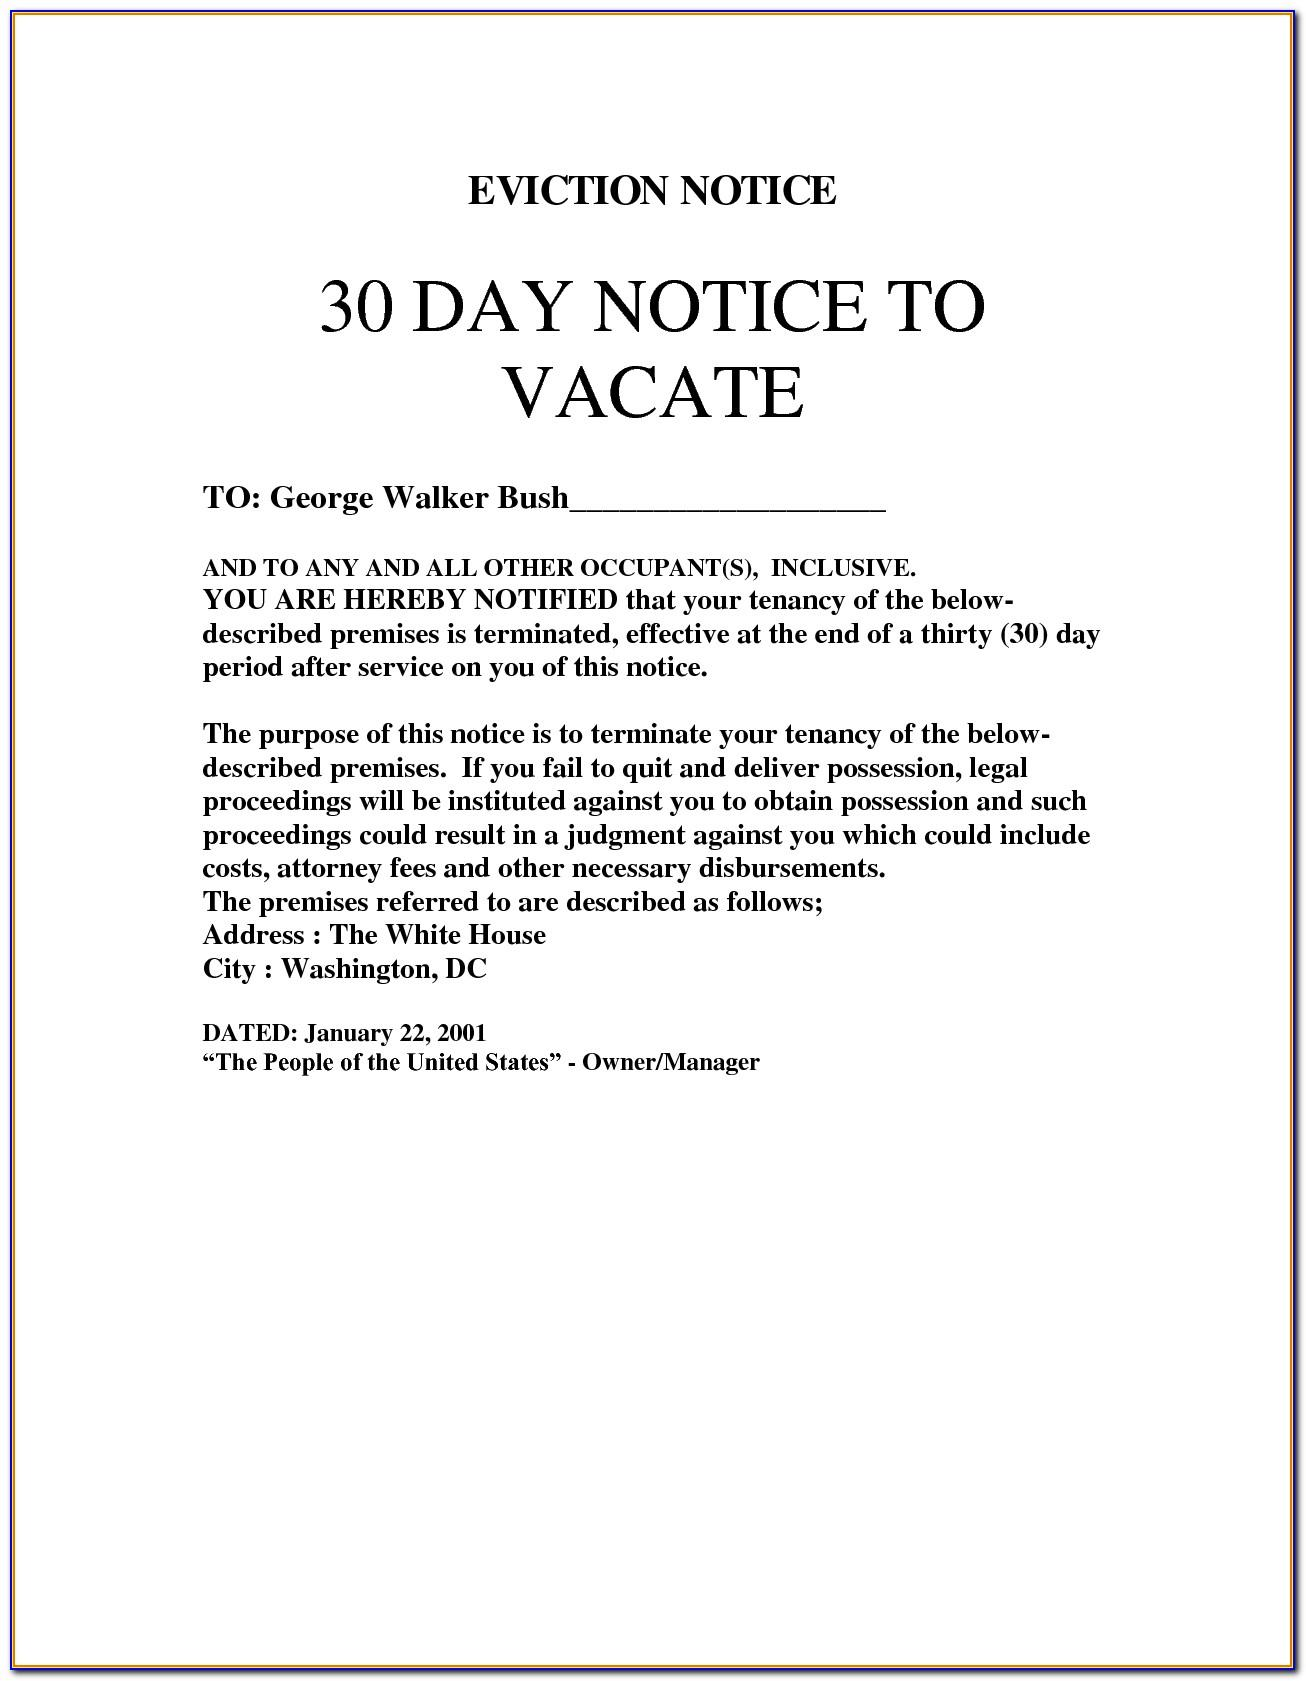 30 Day Eviction Notice Template Virginia